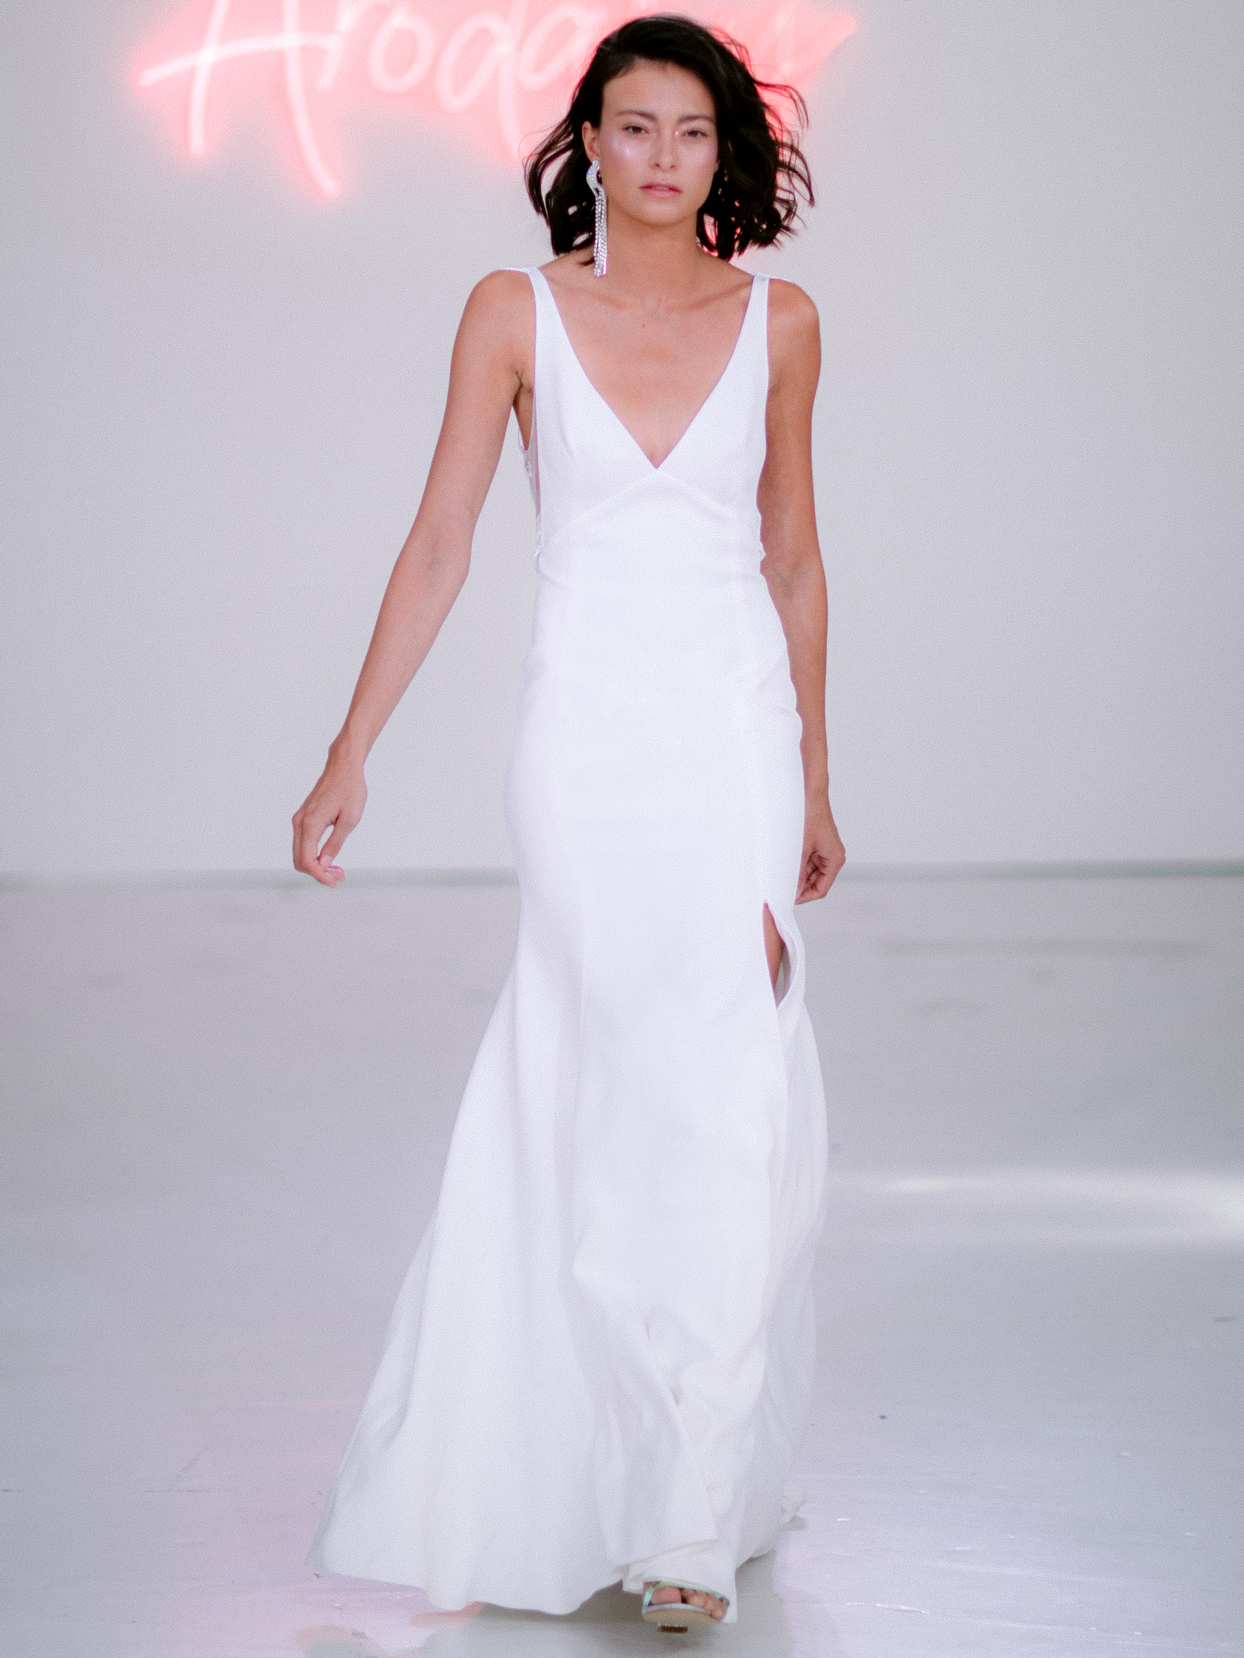 Rime Arodaky X The Mews Bridal side slit v-neck sleeveless wedding dress fall 2020